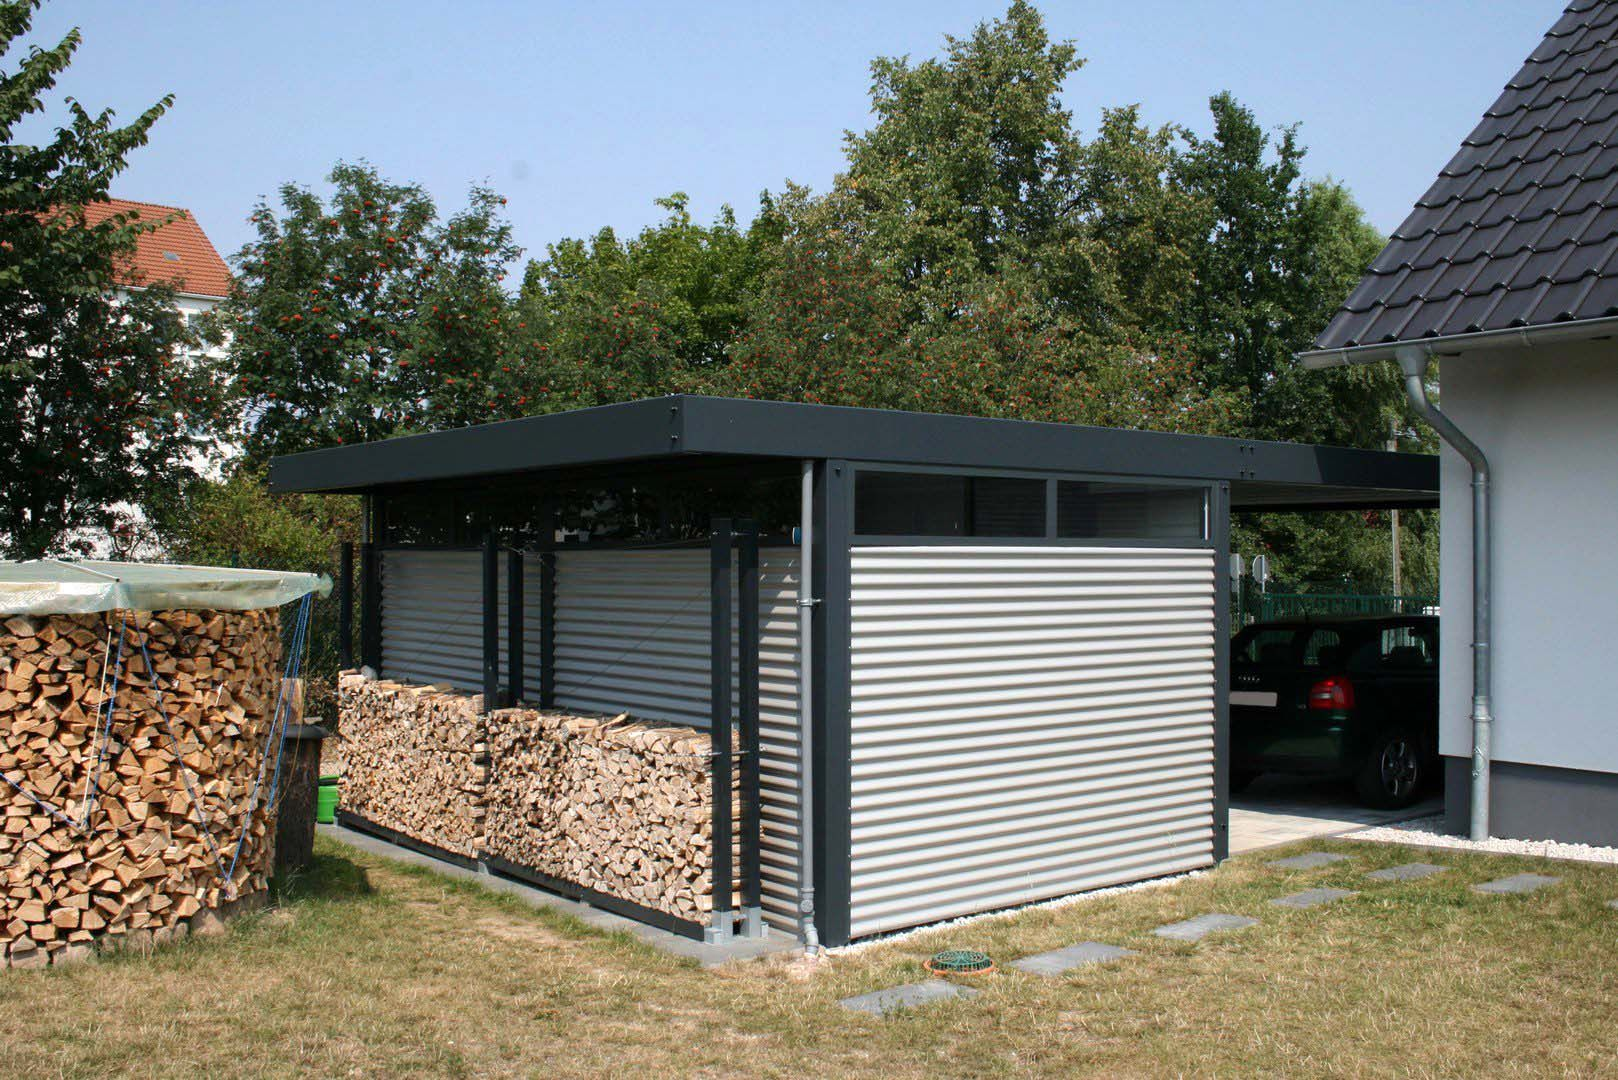 design metall carport aus stahl blech mit abstellraum. Black Bedroom Furniture Sets. Home Design Ideas